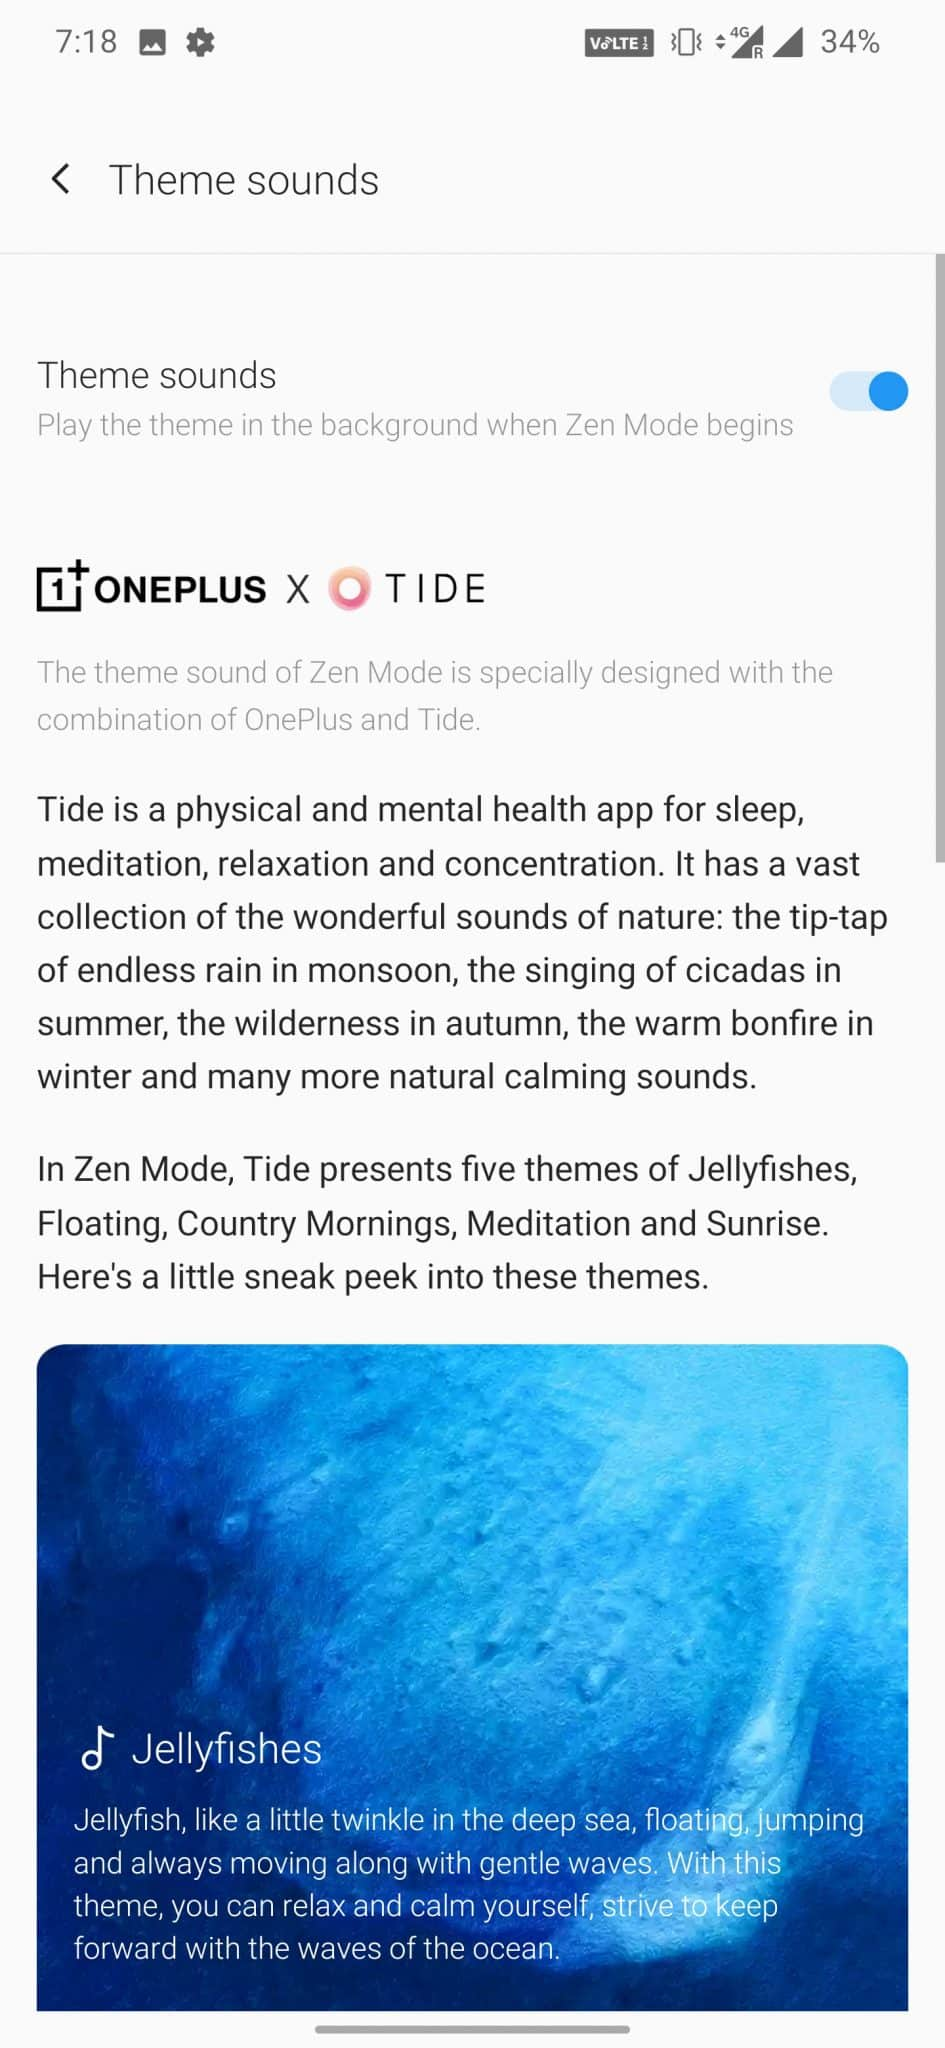 Oneplus updates Zen Mode in collaboration with Tide app adding them sound